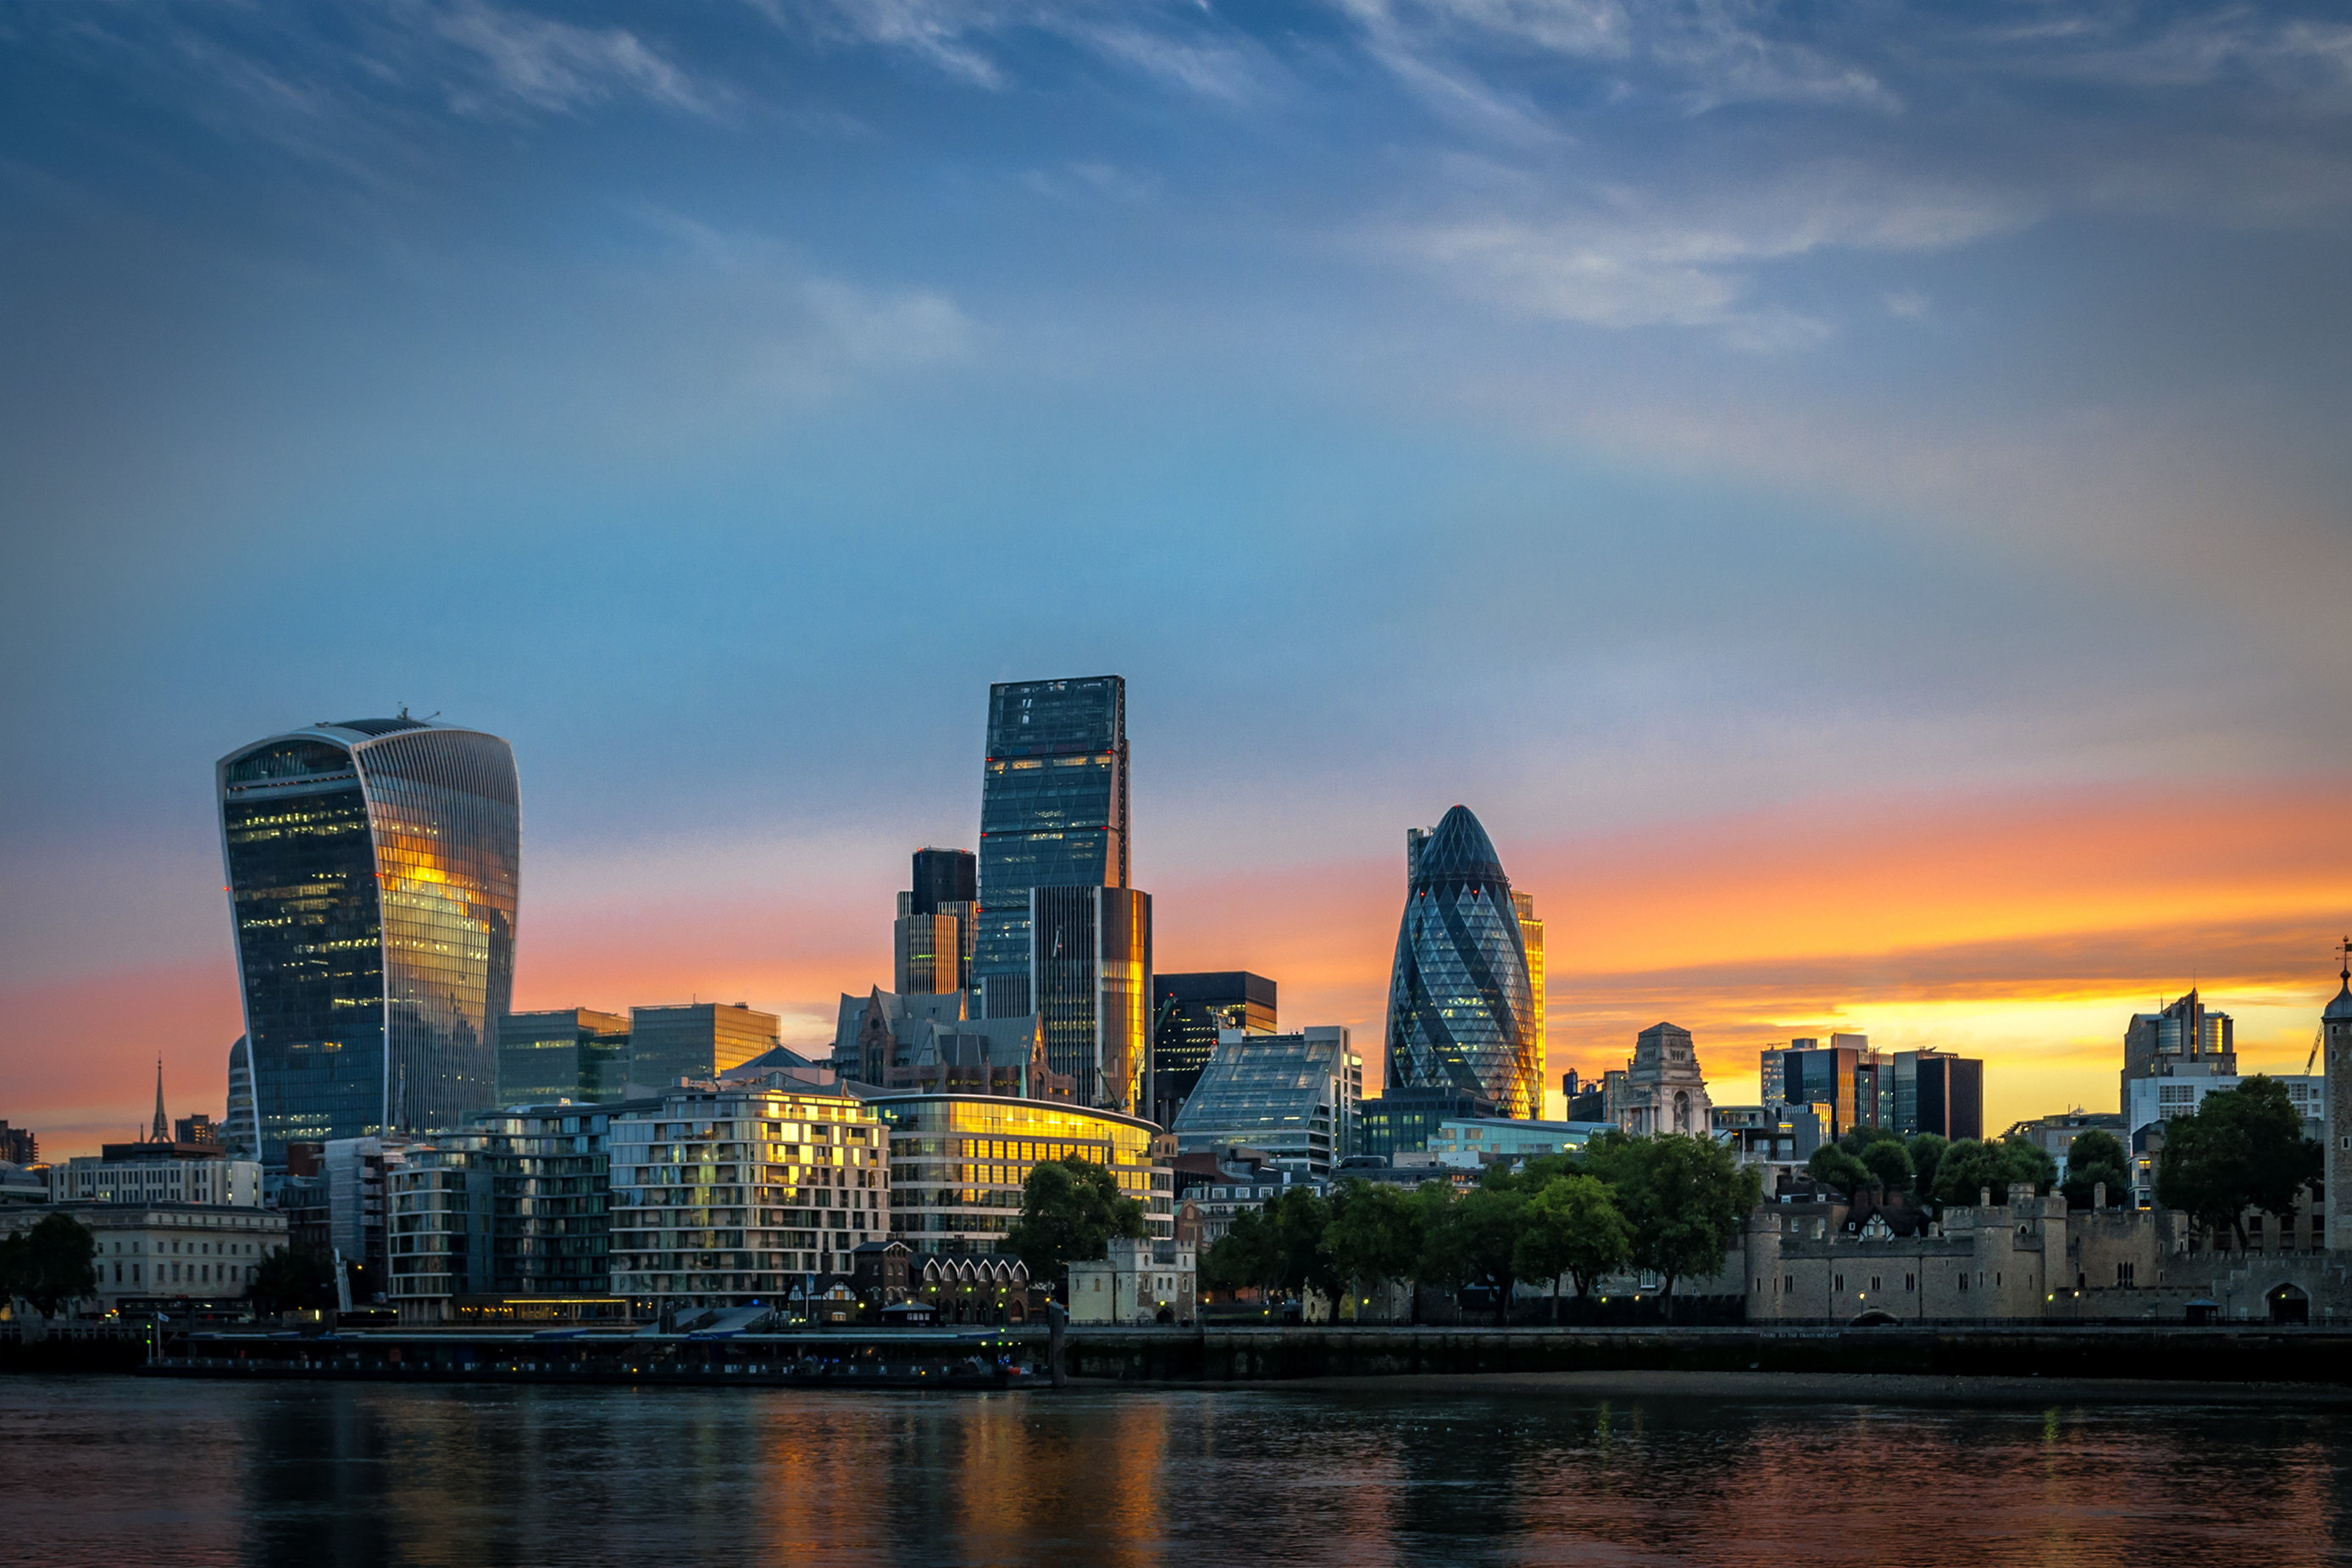 London Property Prices for Central Housing Group